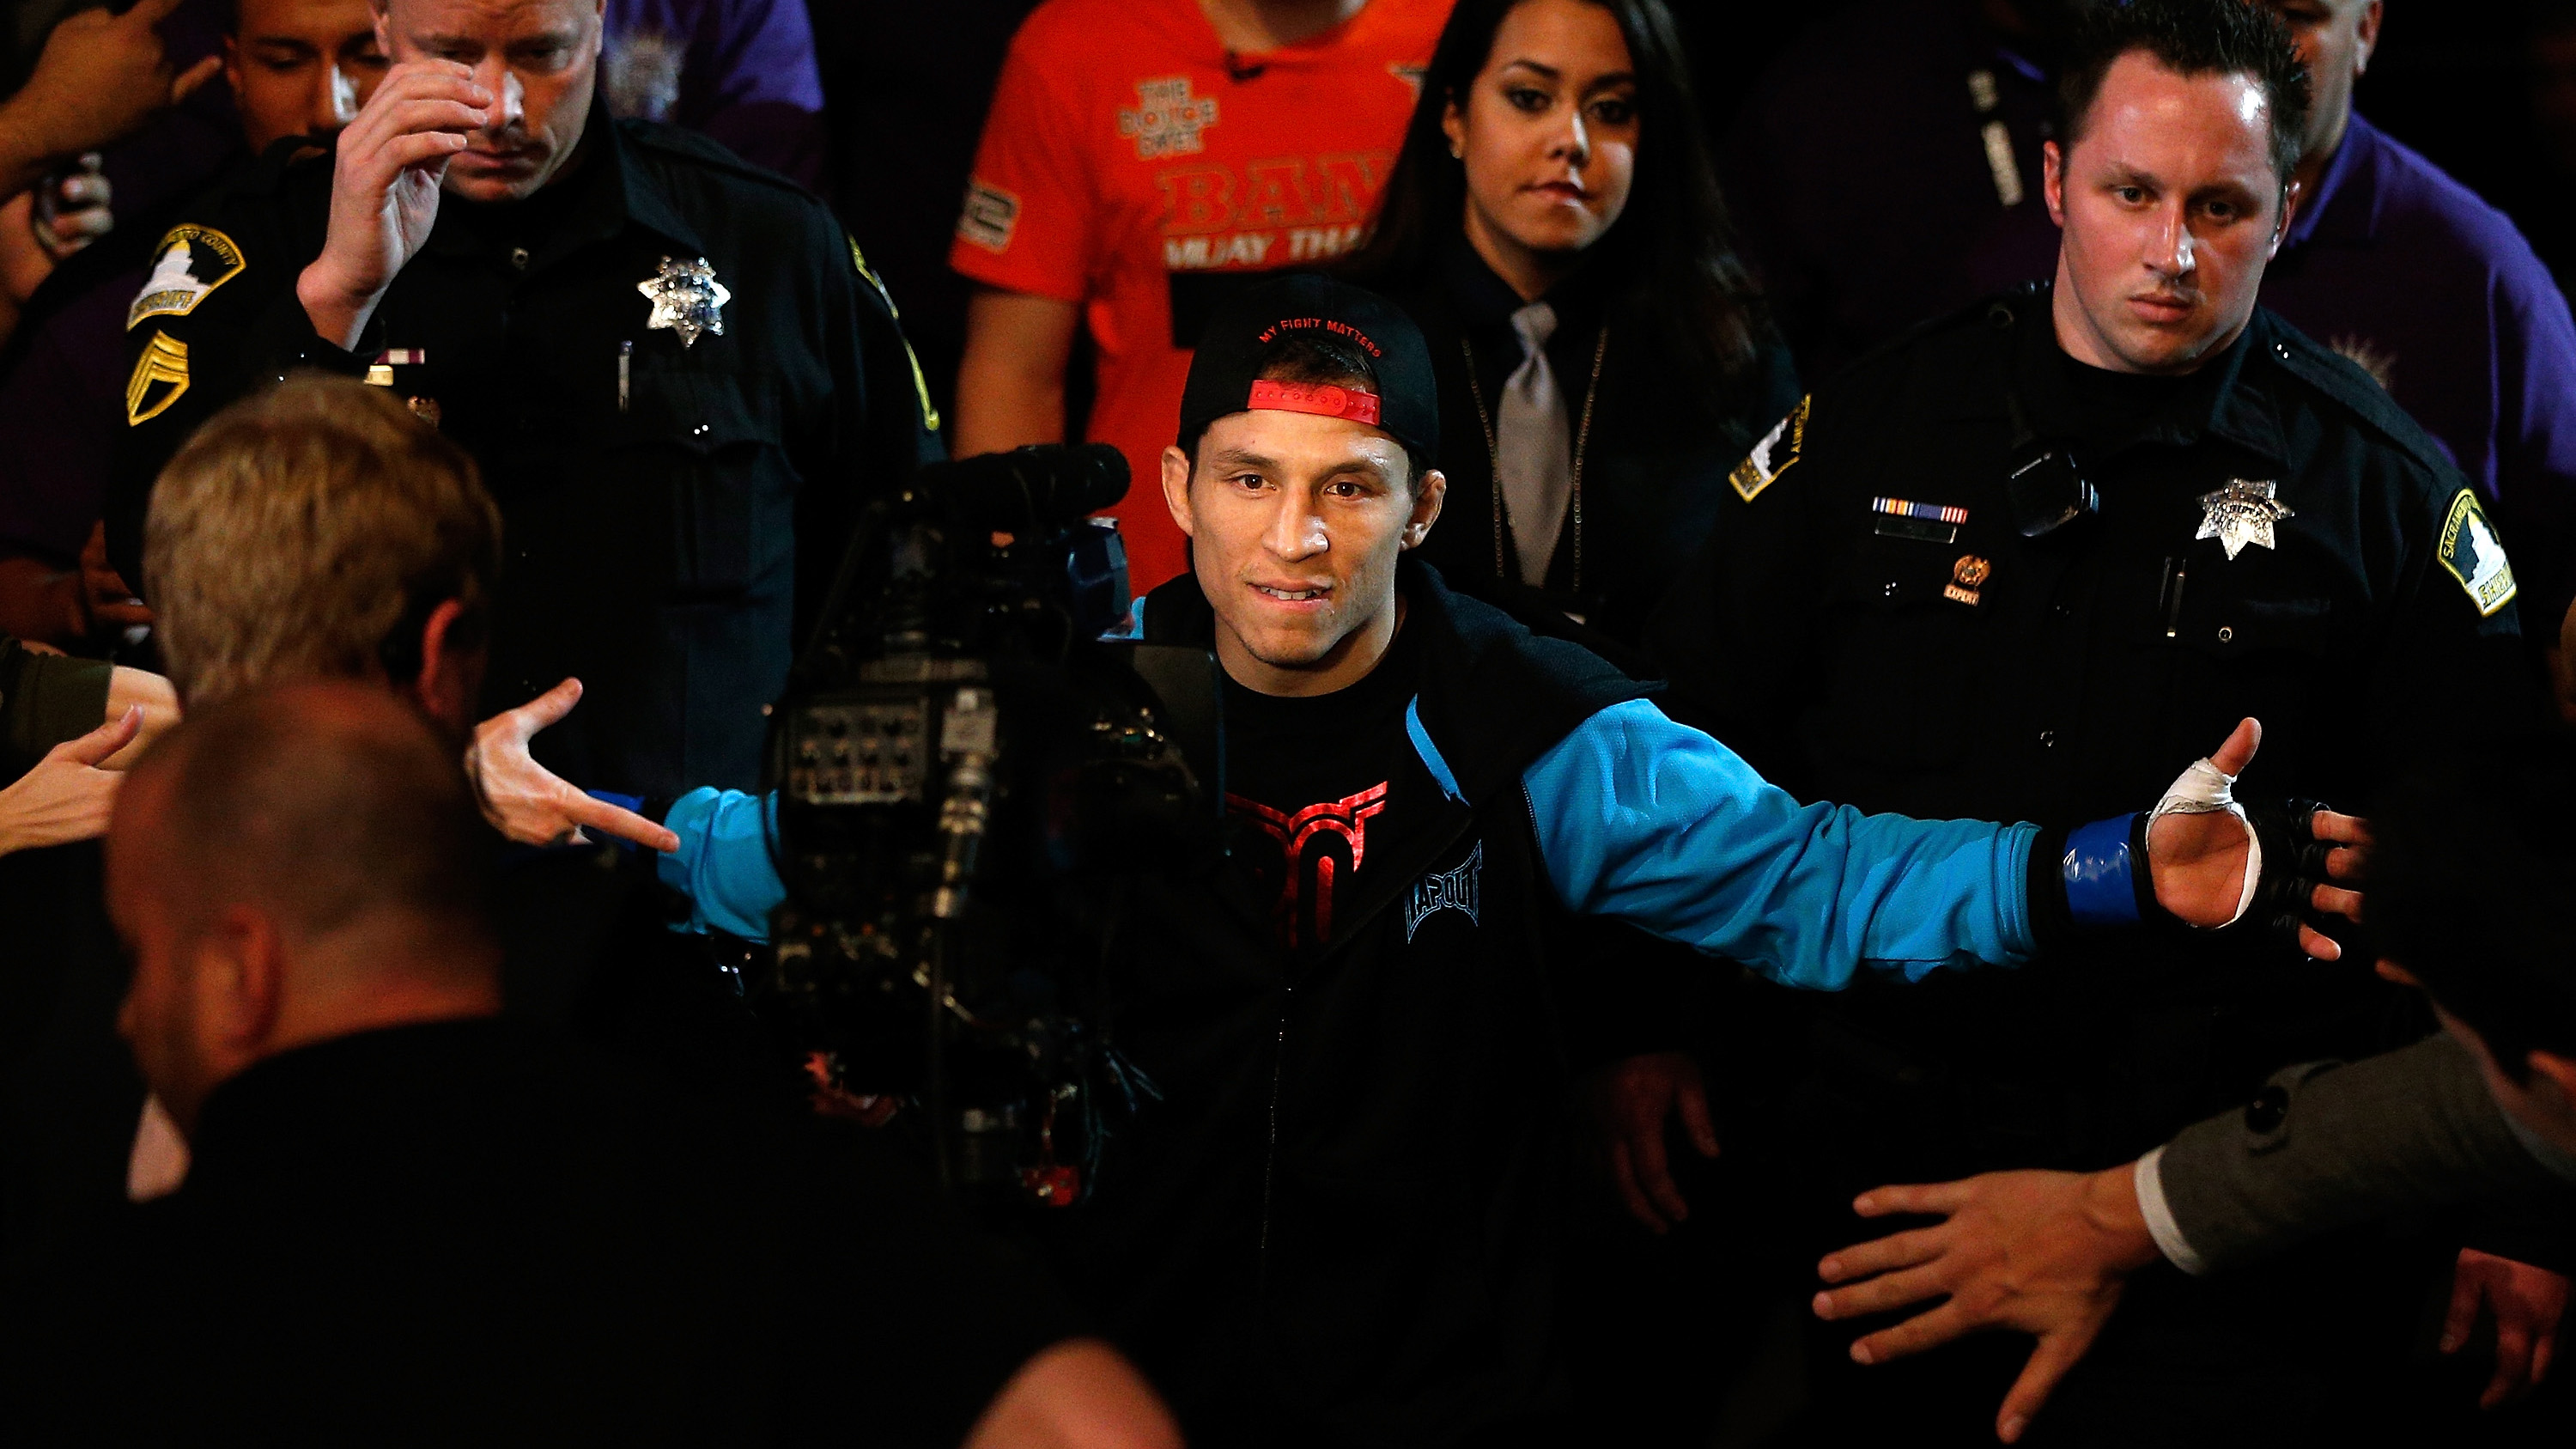 Benavidez knows how to amp up a crowd (Photo by Josh Hedges/Zuffa LLC/Zuffa LLC via Getty Images)